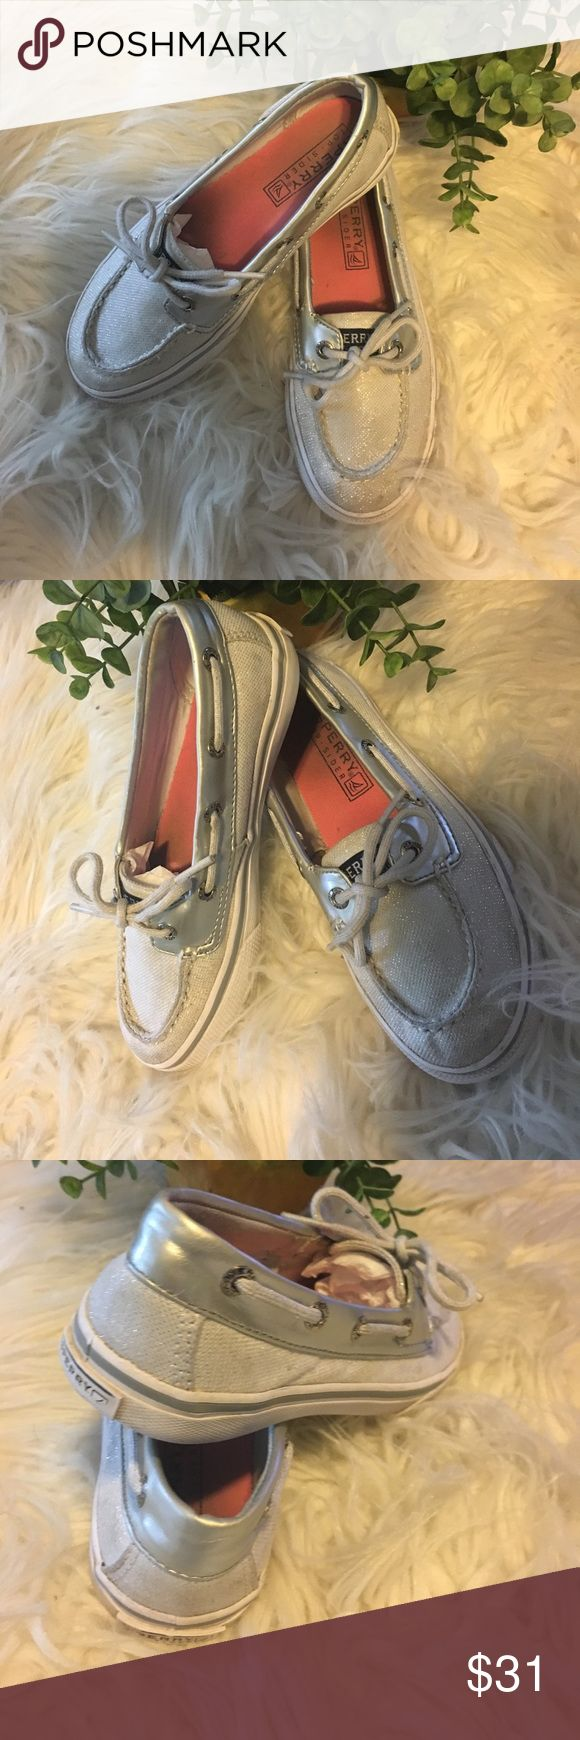 Girls Sperry Top-Siders Adorable pair of Sperry's! Silver and white with touch of sparkles. Lots of life left in these stylish pair of Sperry's! Why buy new when the kids grow right out of their shoes at this age! Overall in very good condition, see last pic for minor flaw, Sperry rubbing off! Sperry Top-Sider Shoes